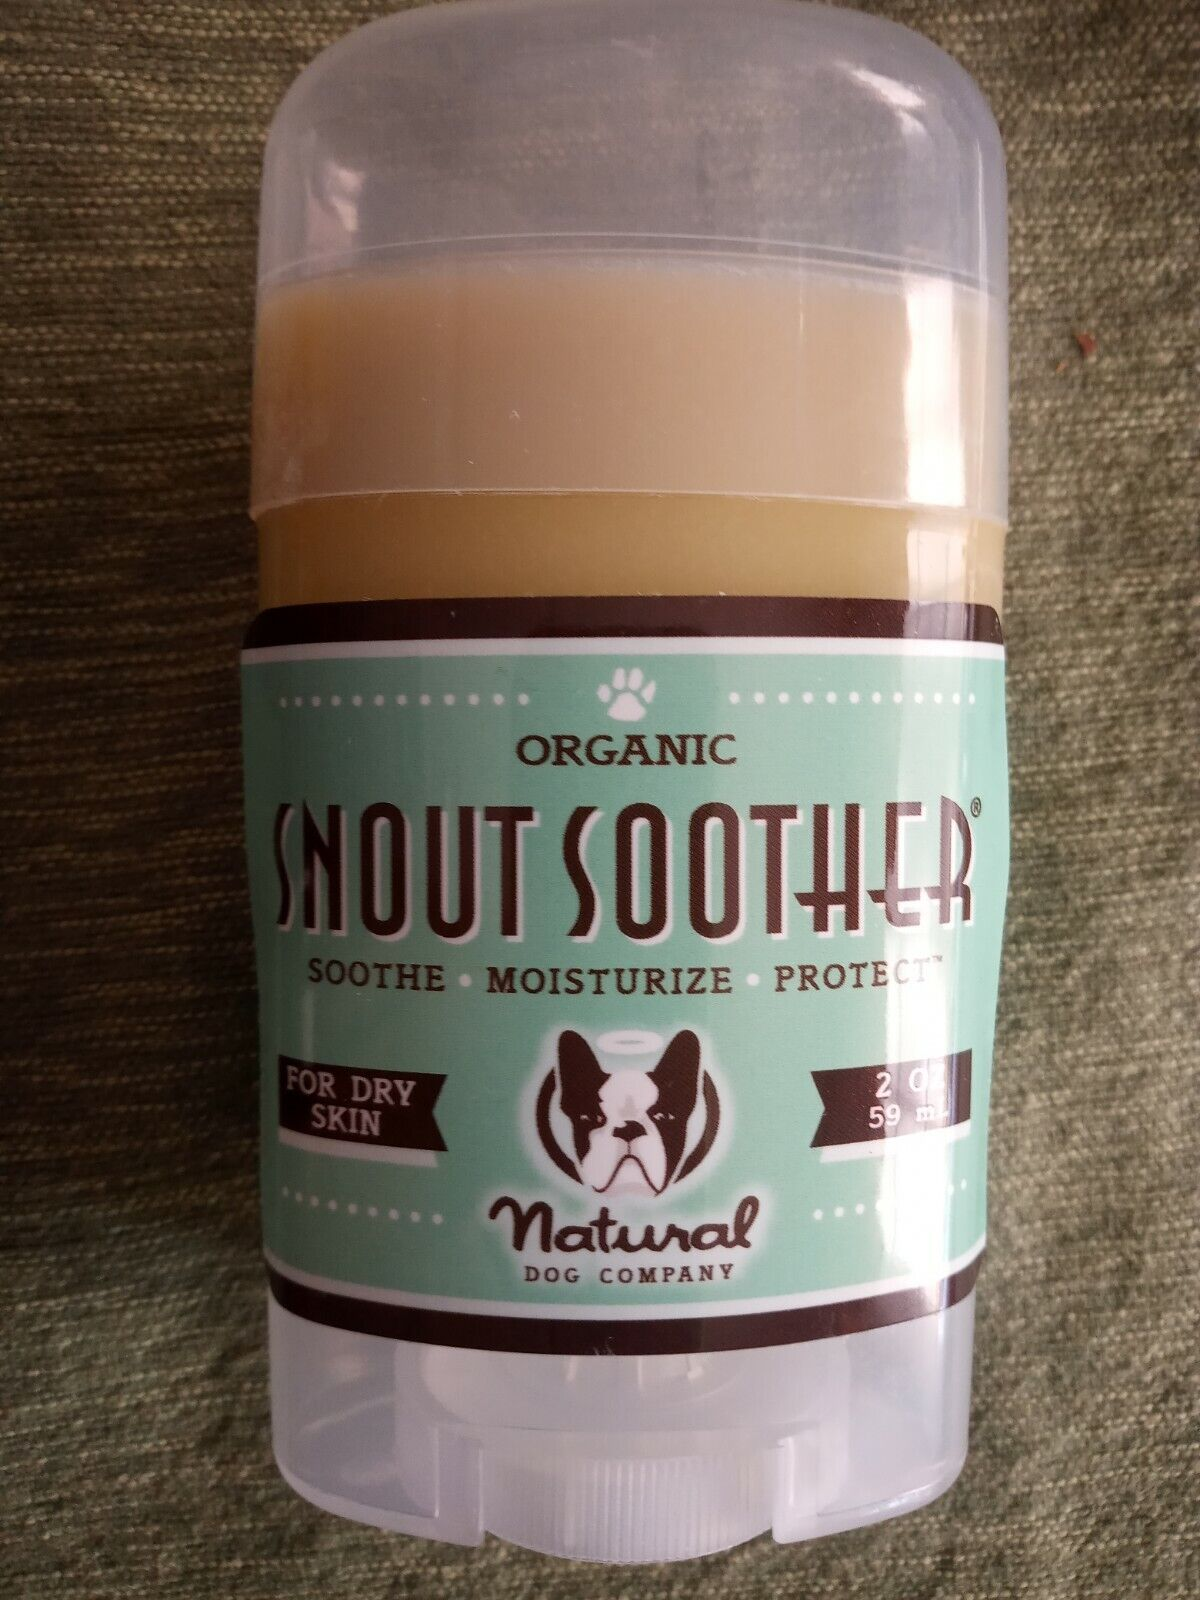 Pet Natural Dog Co Organic Snout Soother For Dog's Cracked, Dry nose 2 oz.